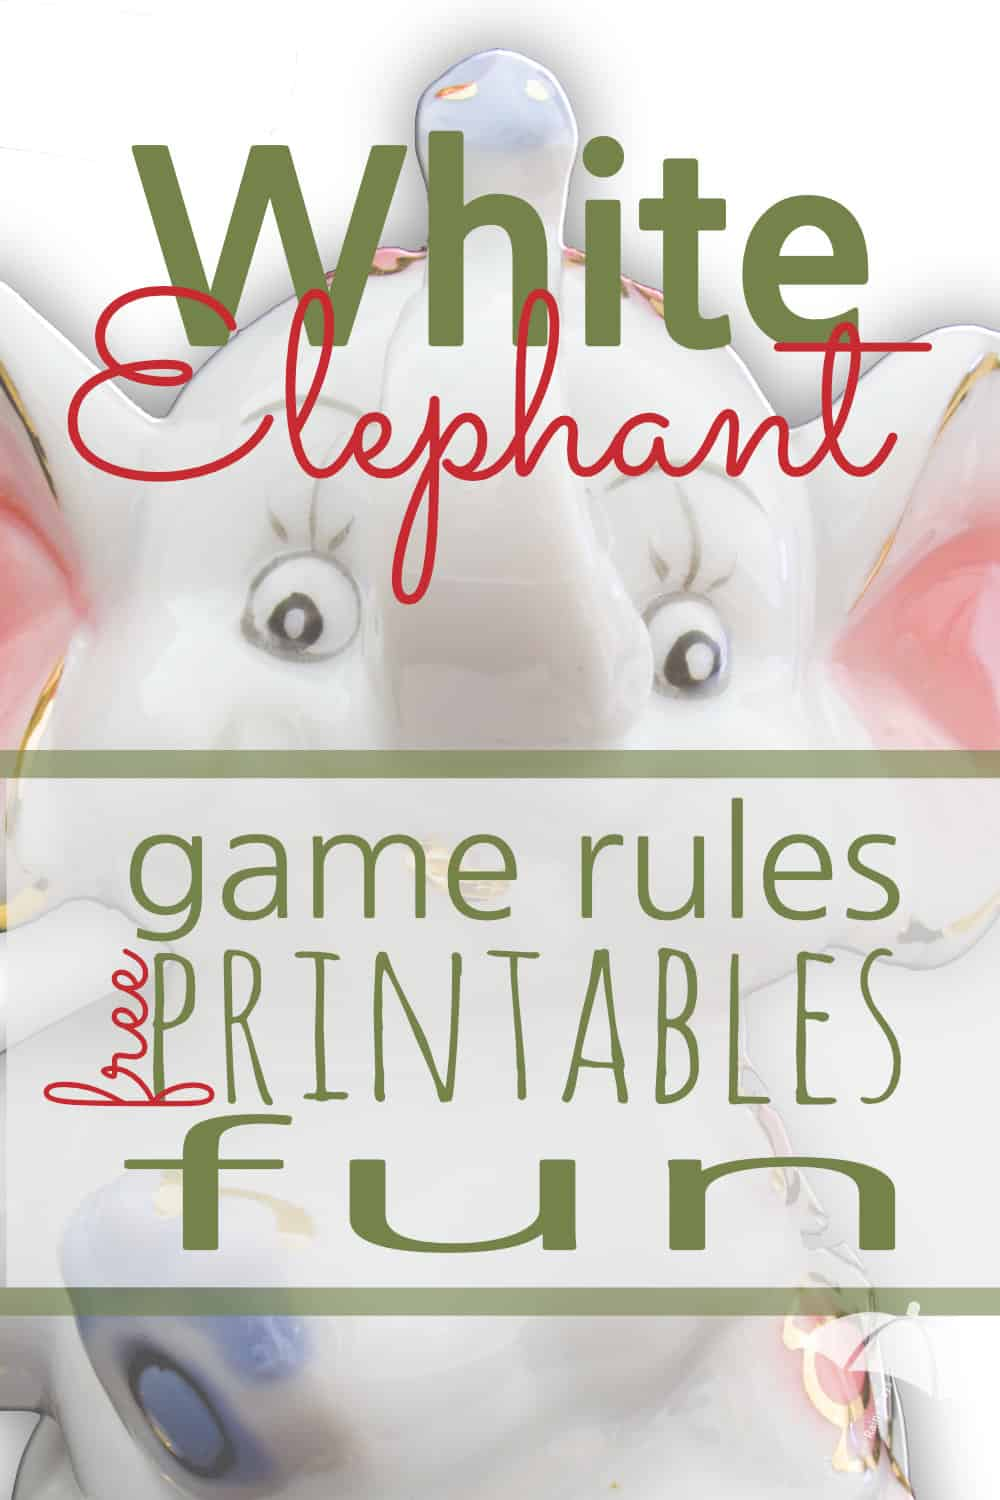 White elephant gift exchange rules and printables sunshine and a white elephant gift exchange is budget friendly and fun these white elephant gift exchange negle Gallery